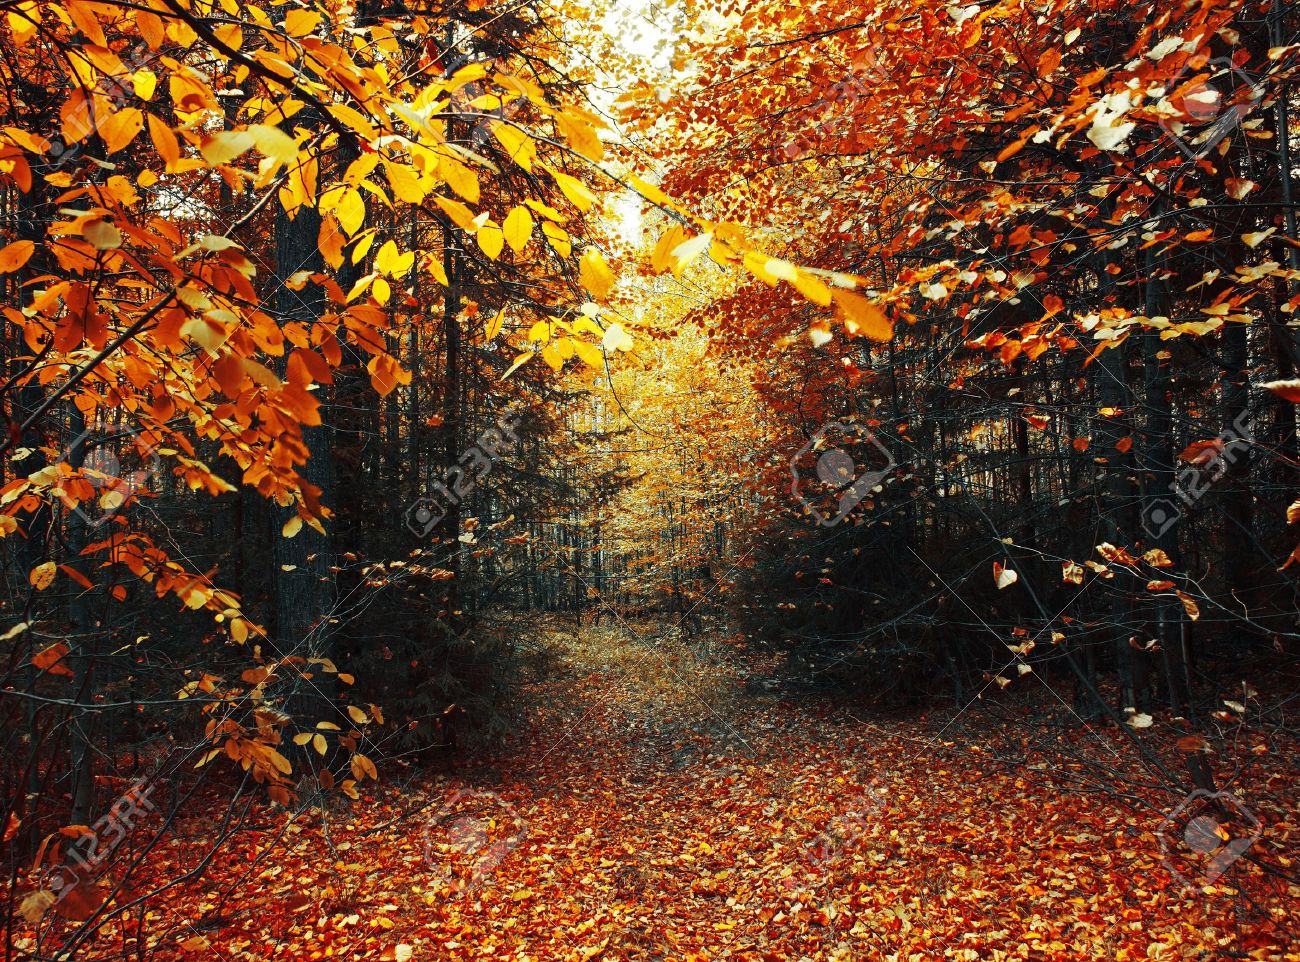 Path in autumn forest - 7898855